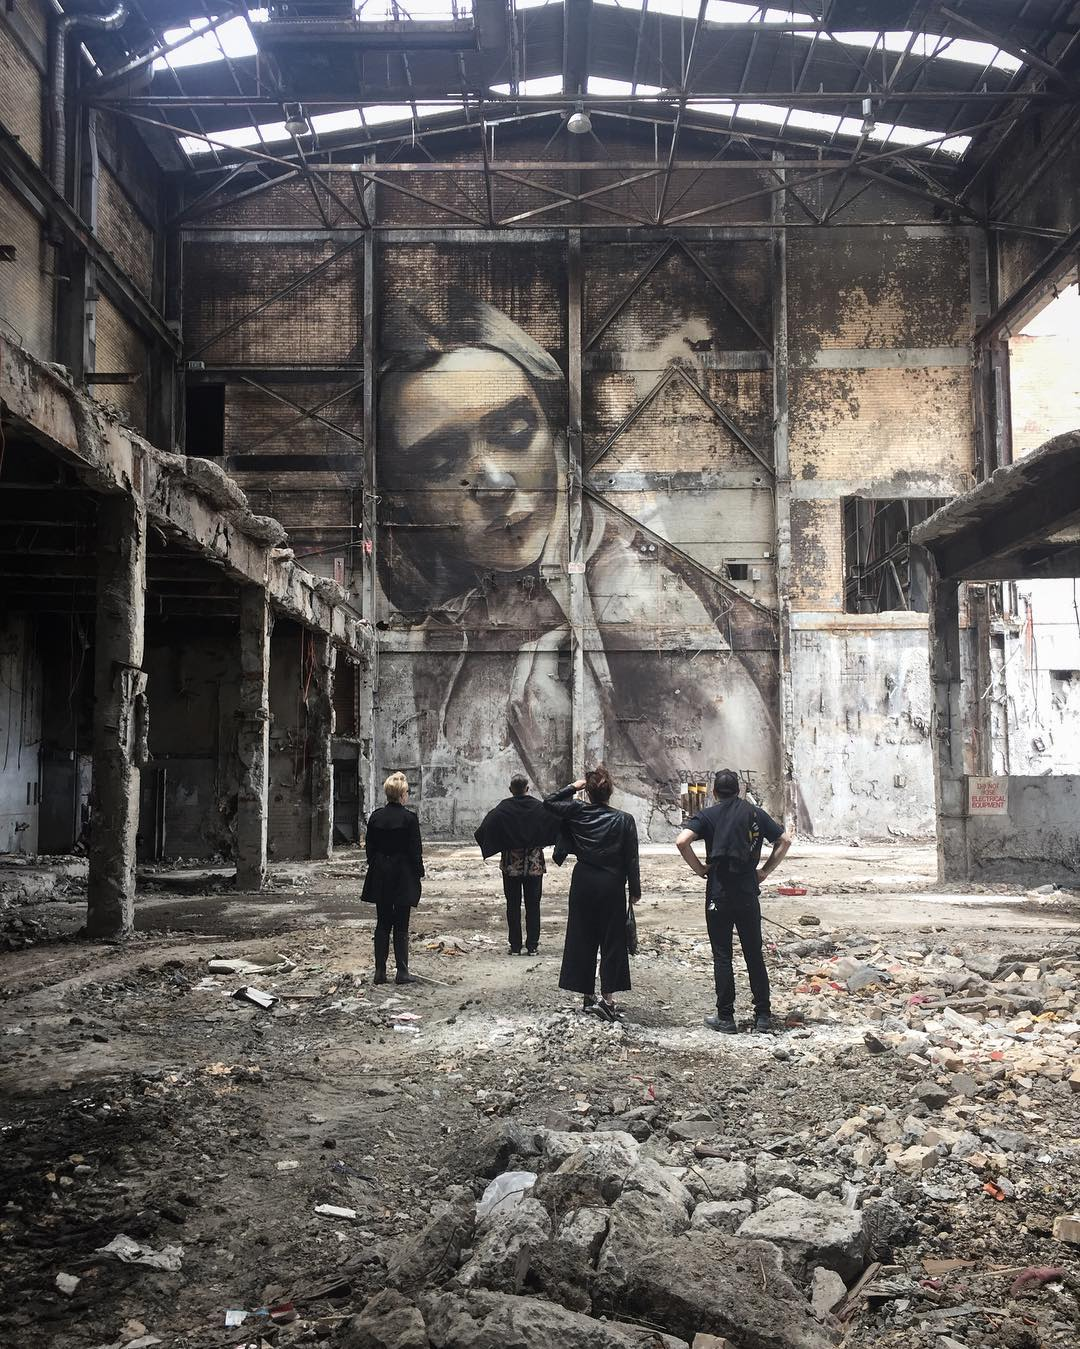 street art in abandoned place